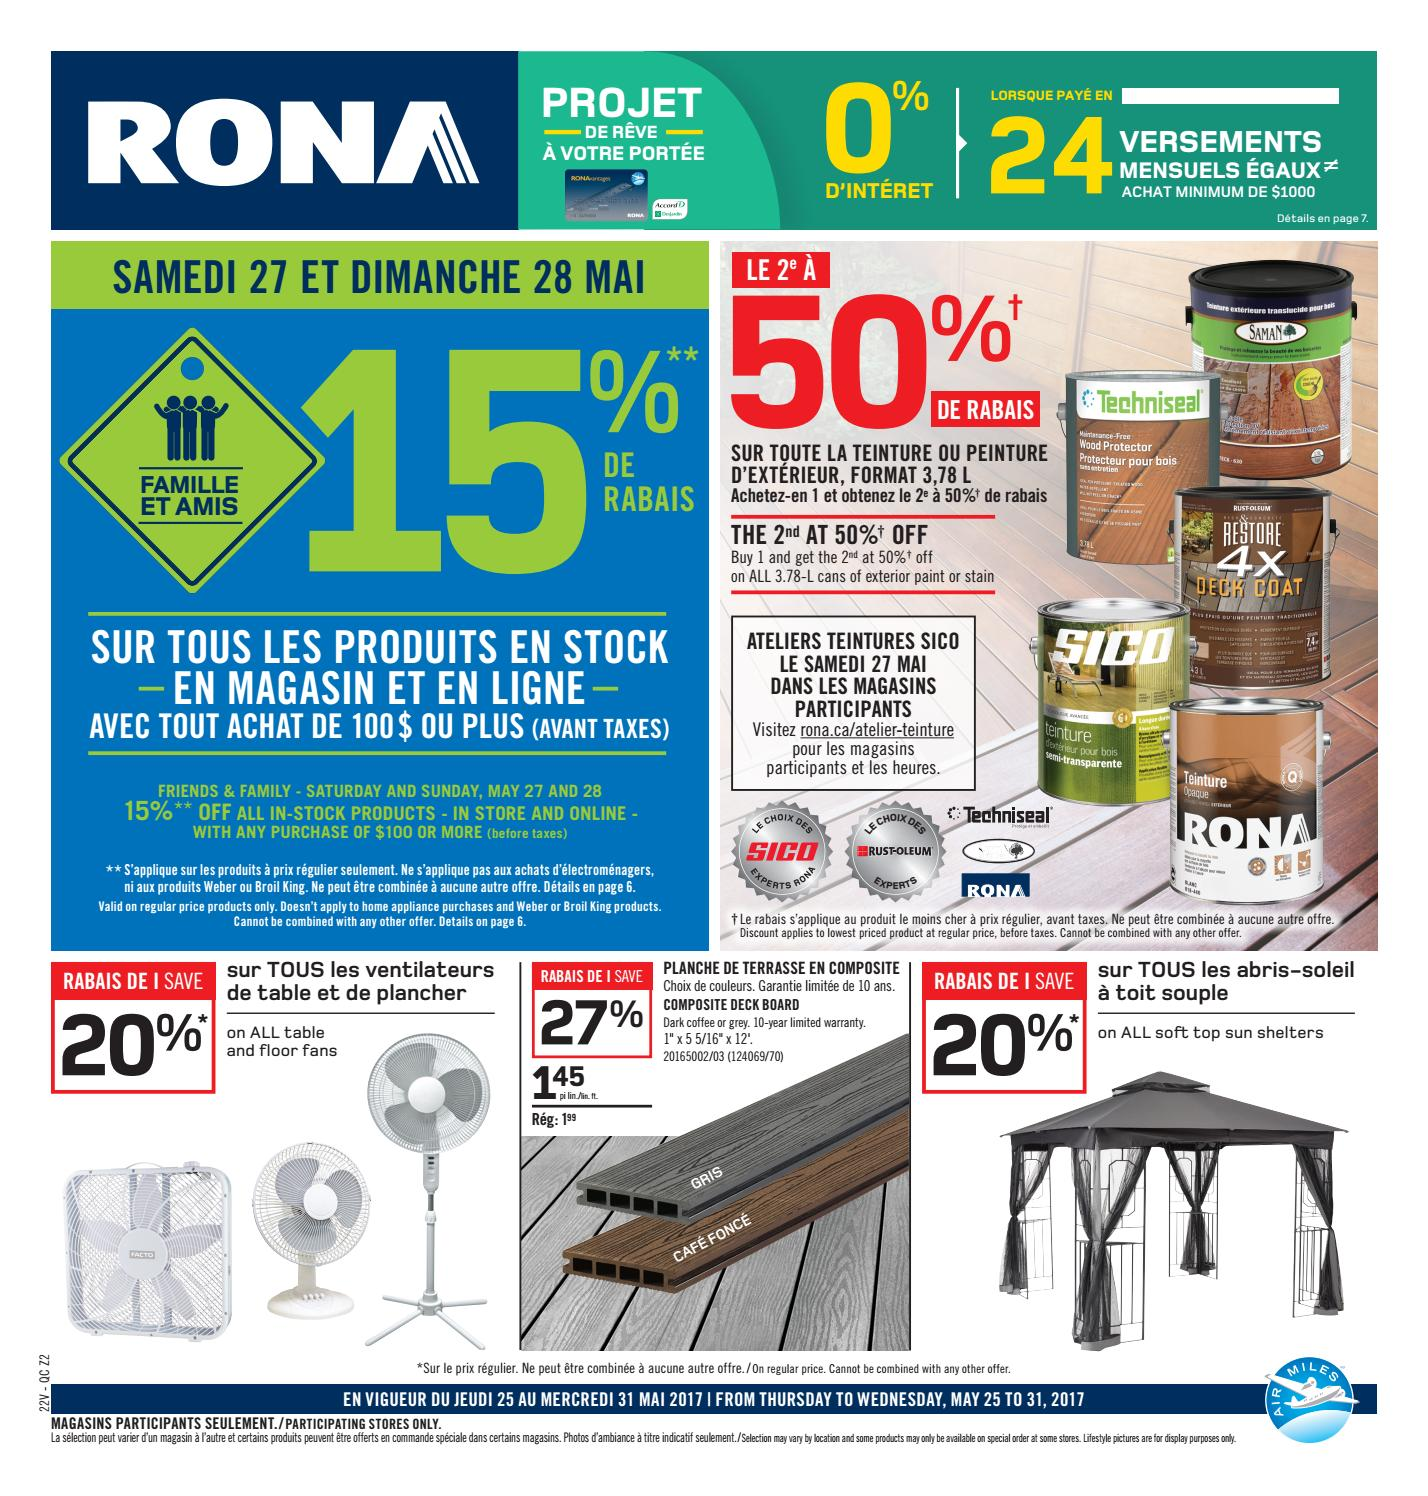 Store Exterieur Rona Publisac 2017 Flyer Rona Wk22 Prox Z2 By Salewhale Issuu